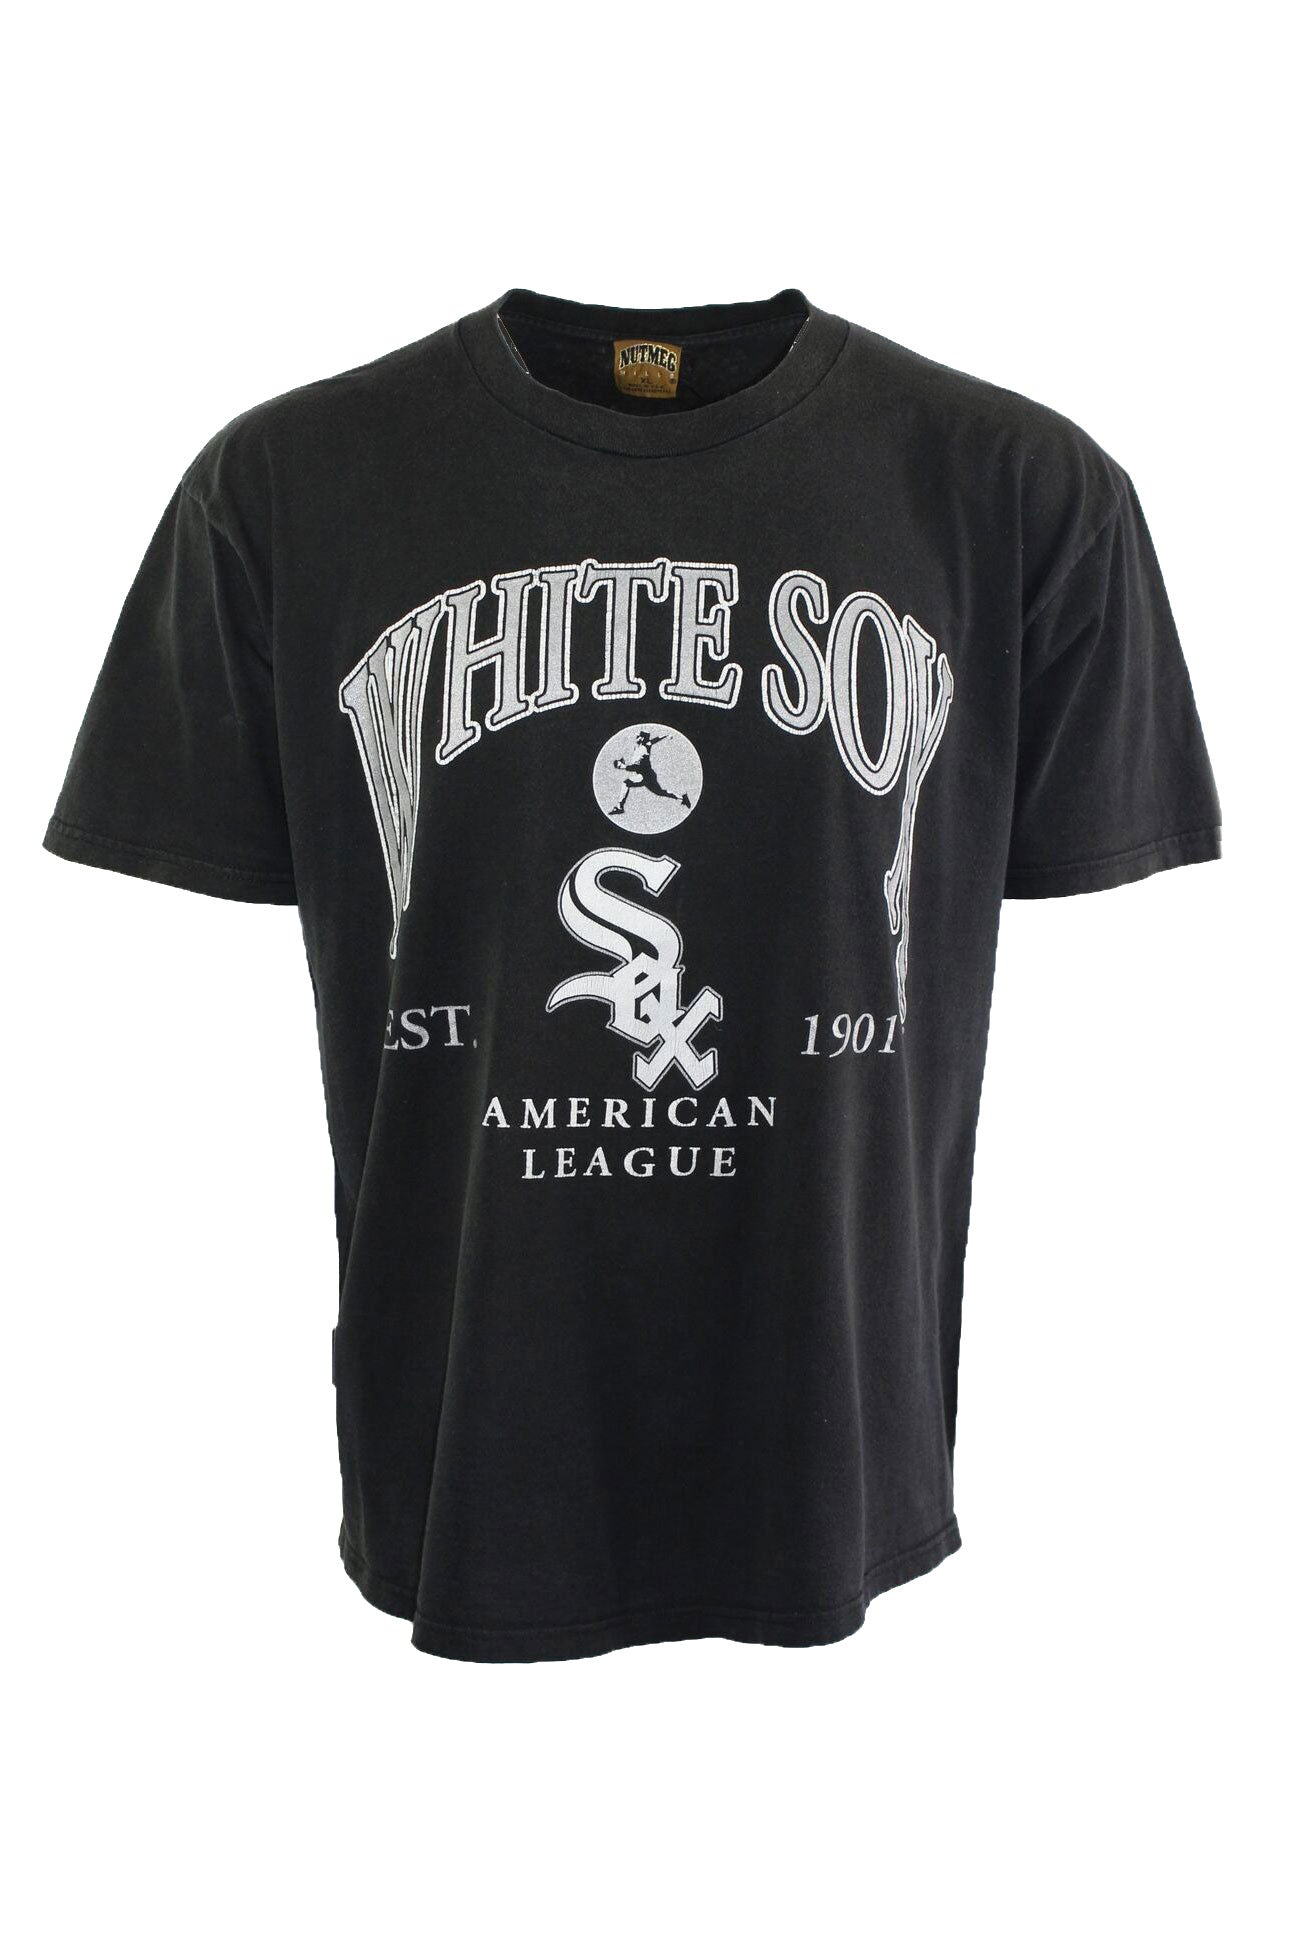 Vintage Black White Sox Tee